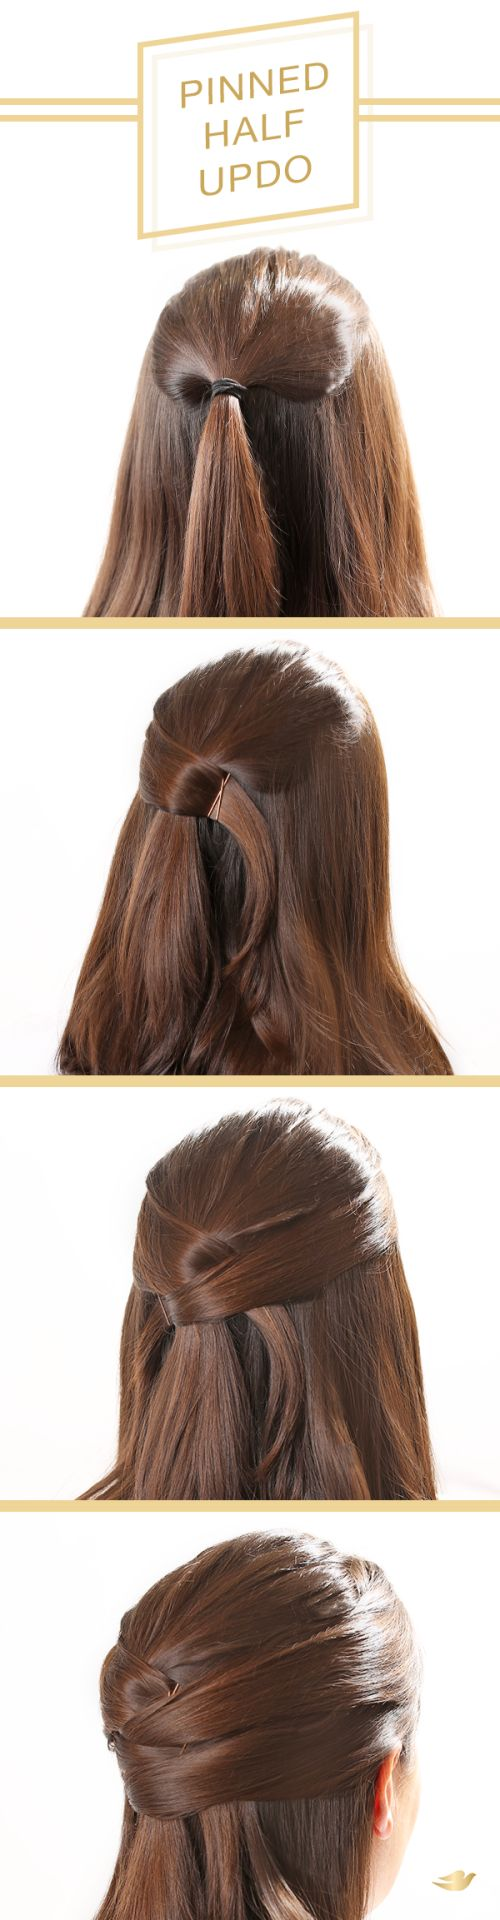 pinned-half-updo